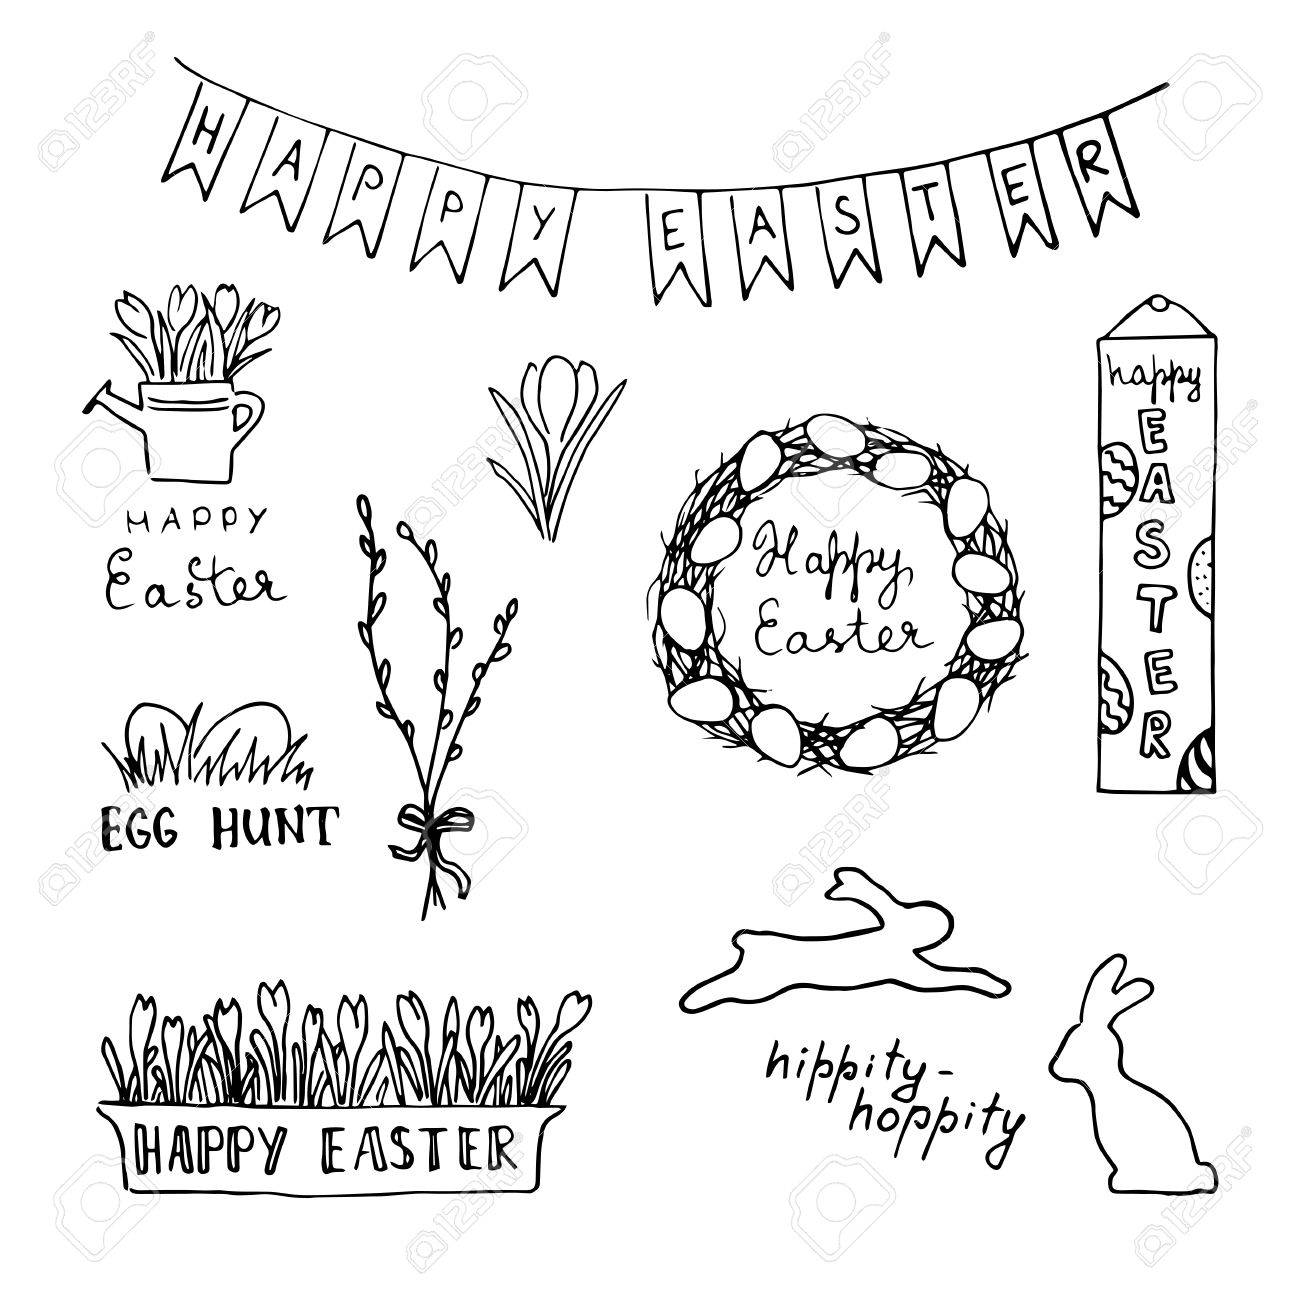 Happy Easter Card With Eggs Rabbits Flowers Lettering Wreath Royalty Free Cliparts Vectors And Stock Illustration Image 73106752